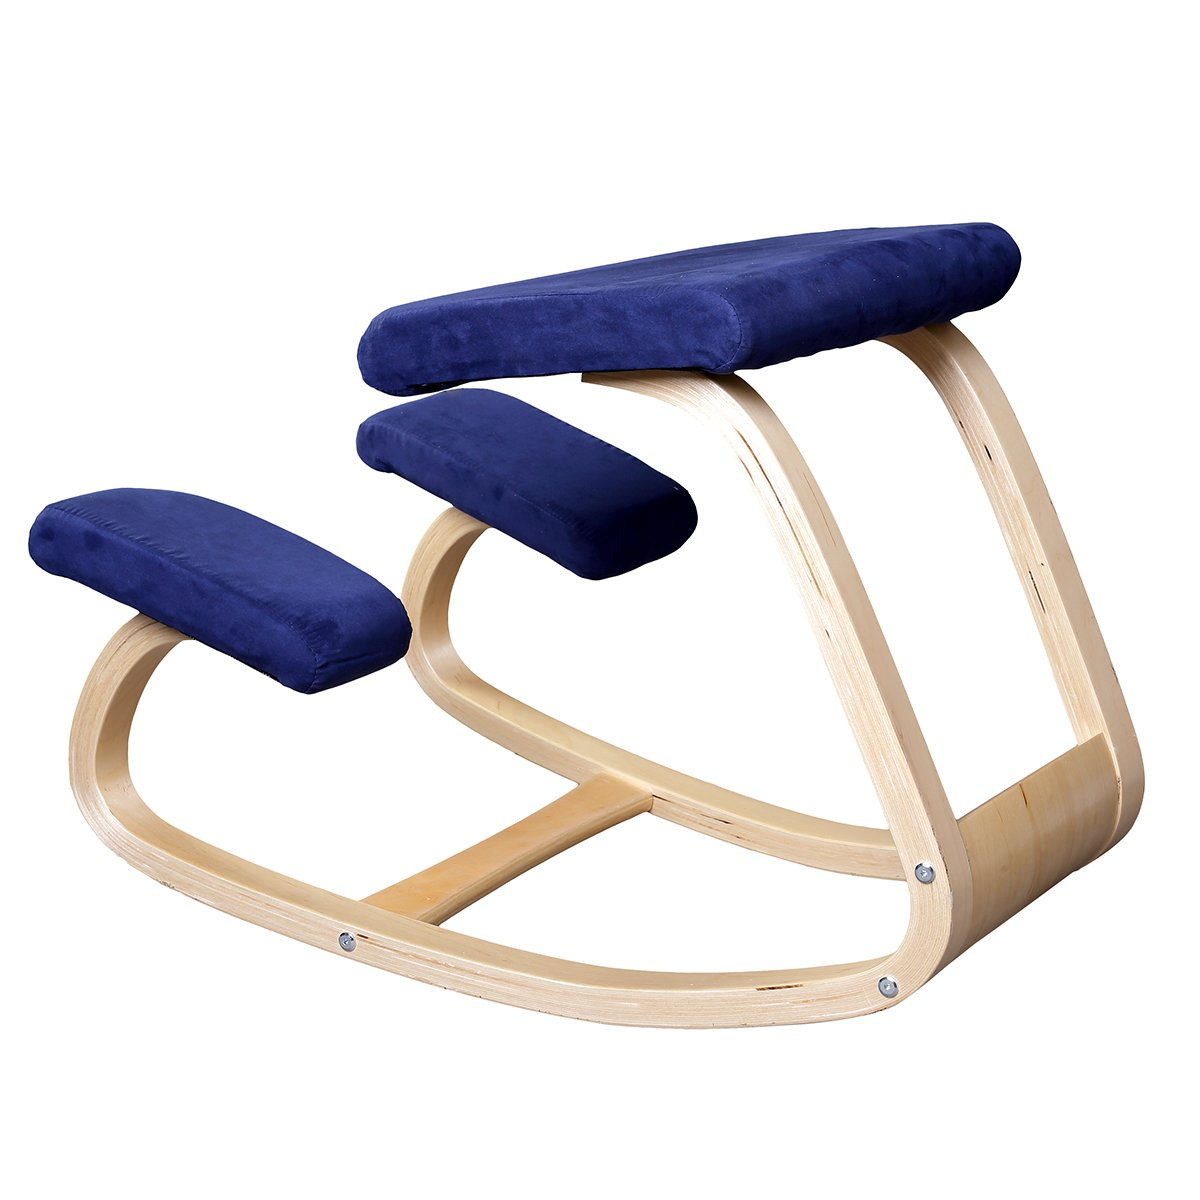 Rocking kneeling chair - Amazon Com Ergonomic Kneeling Chair Better Posture Kneeling Stool For Body Shaping And Relieveing Stress Home And Office Wooden Orthopedic Stool Blue